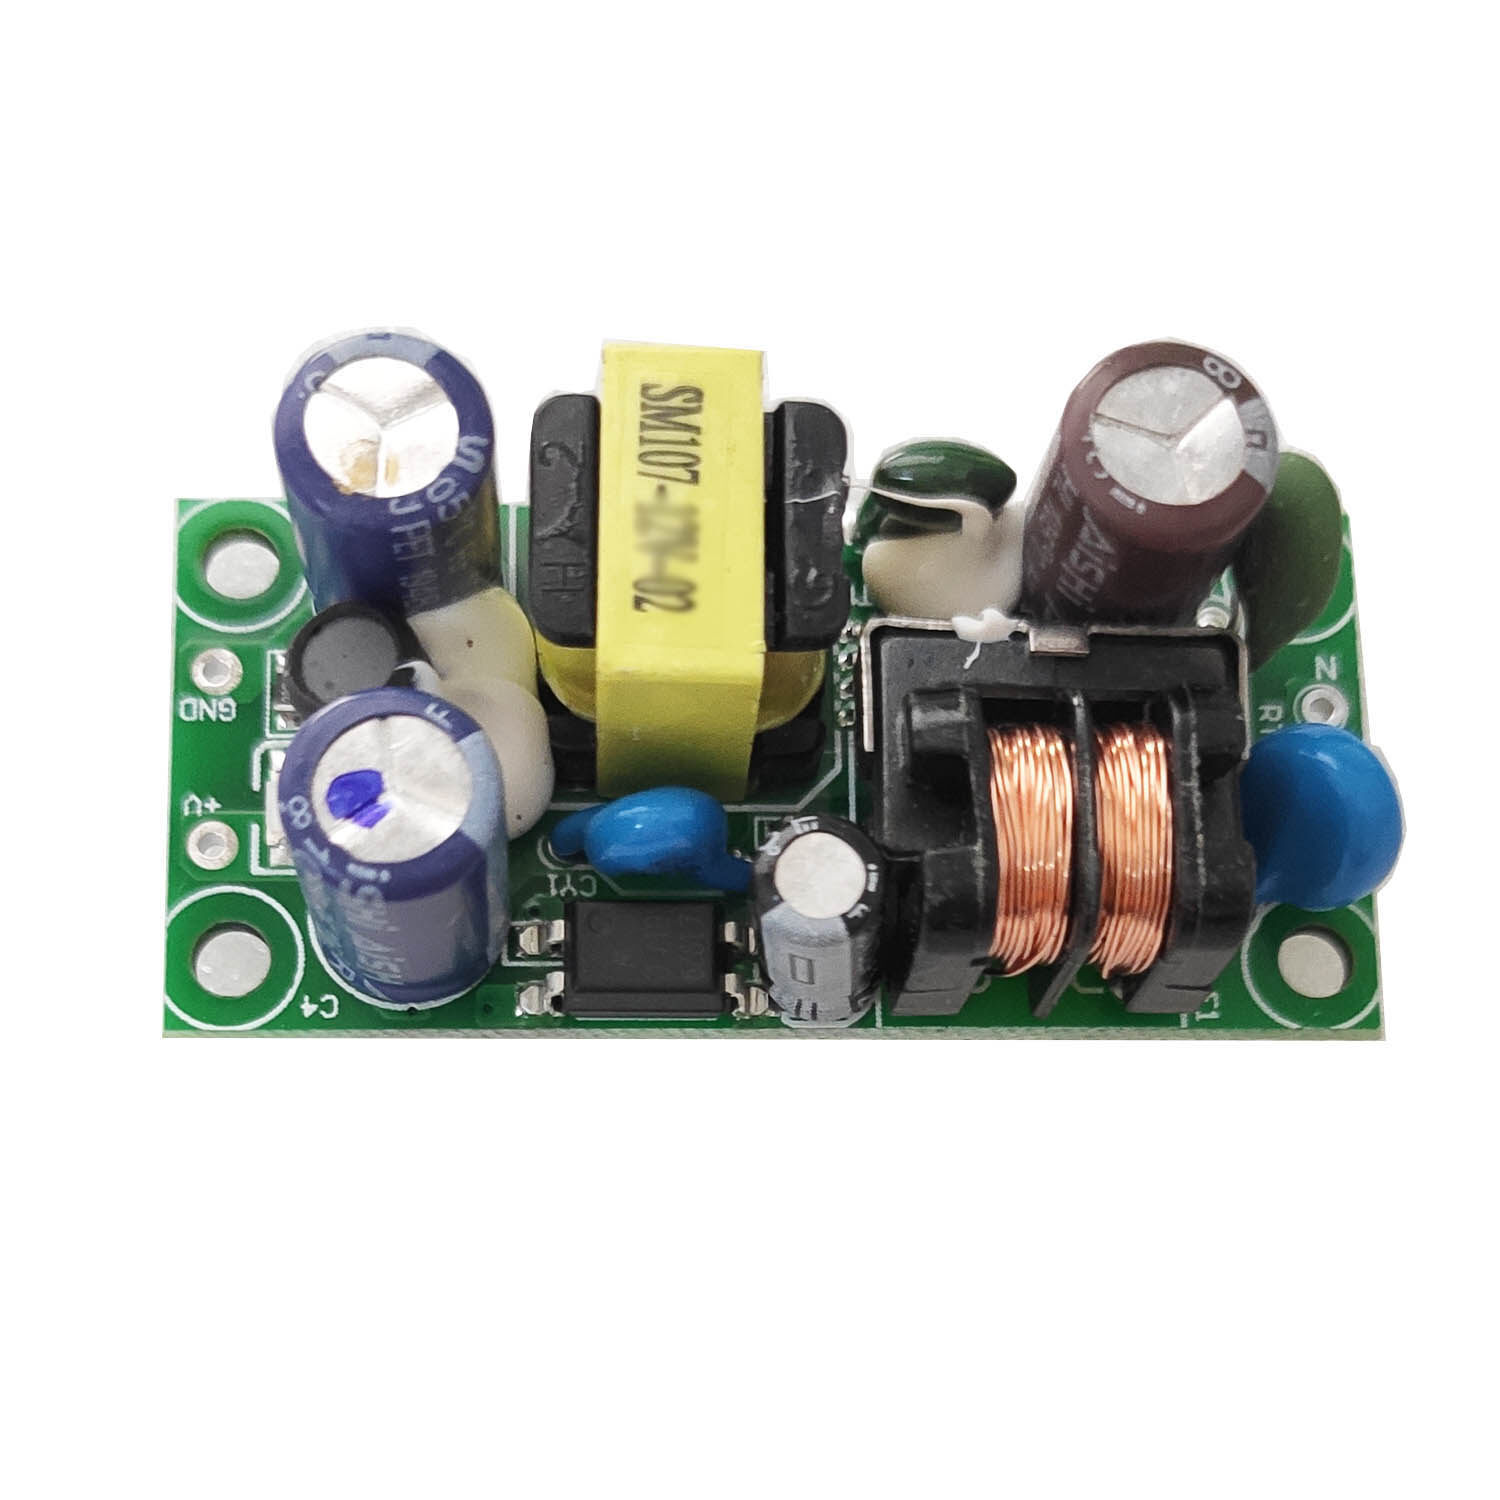 AC-DC 12V 5V 24V 9V Power Supply Buck Konverter Step Down Module AHS